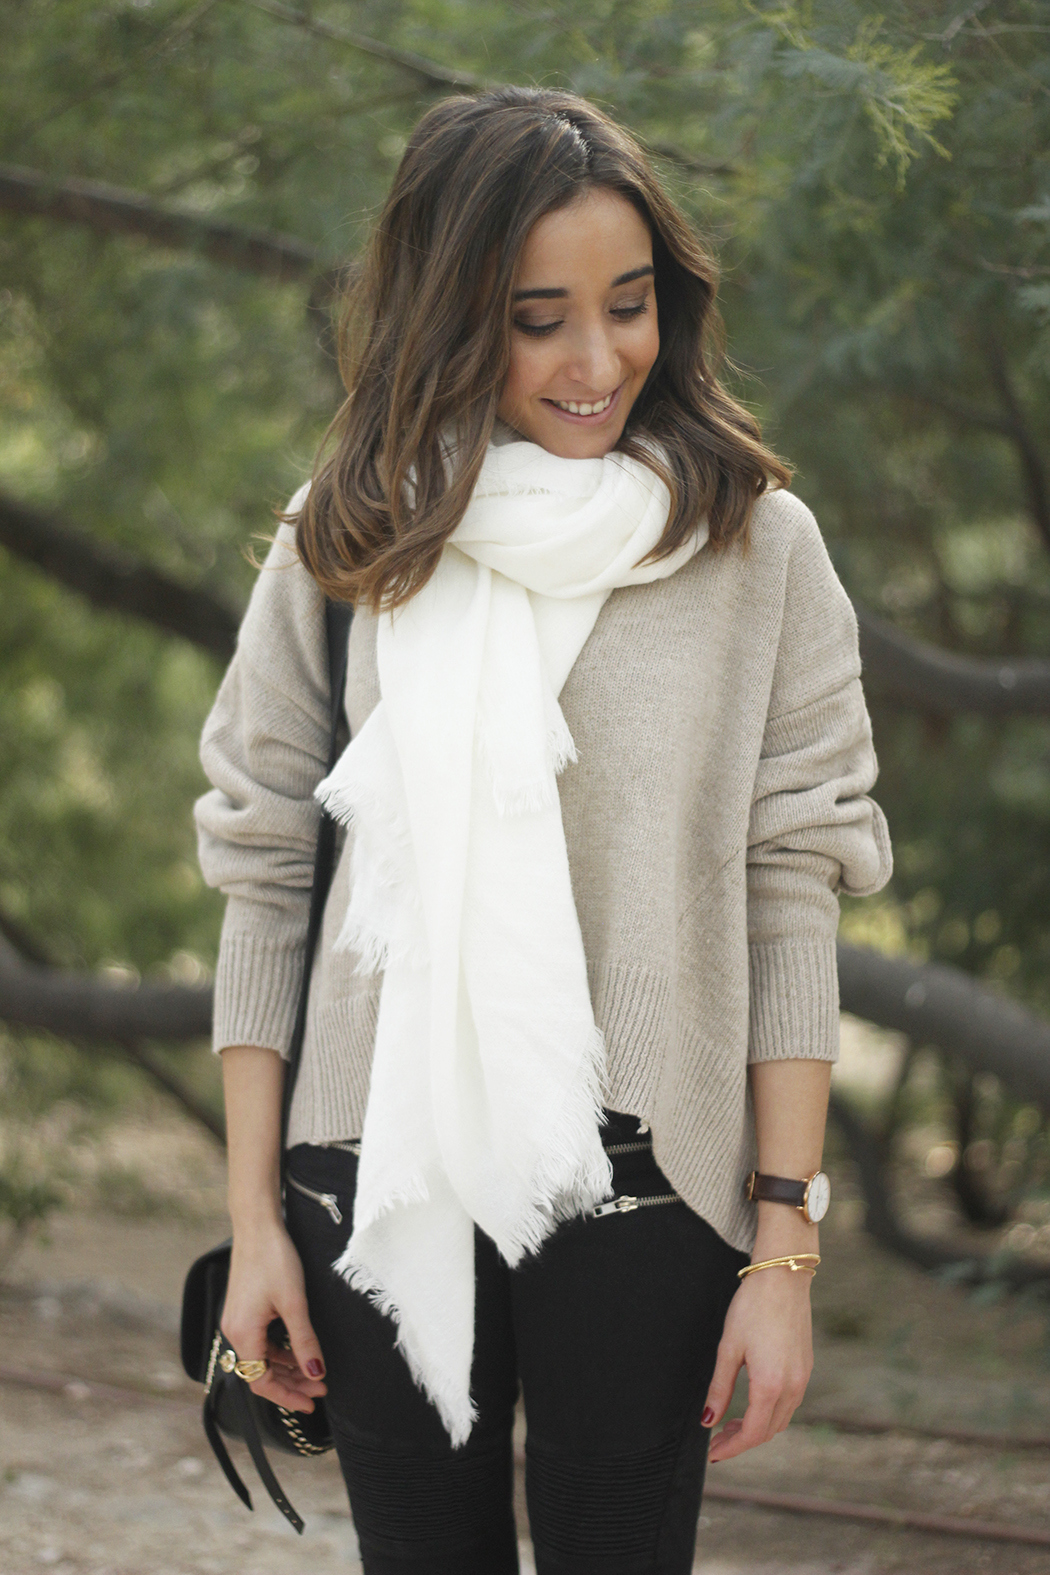 Beige Sweater Black Jeans Nude Heels White Scarf Coach Bag Outfit Style15